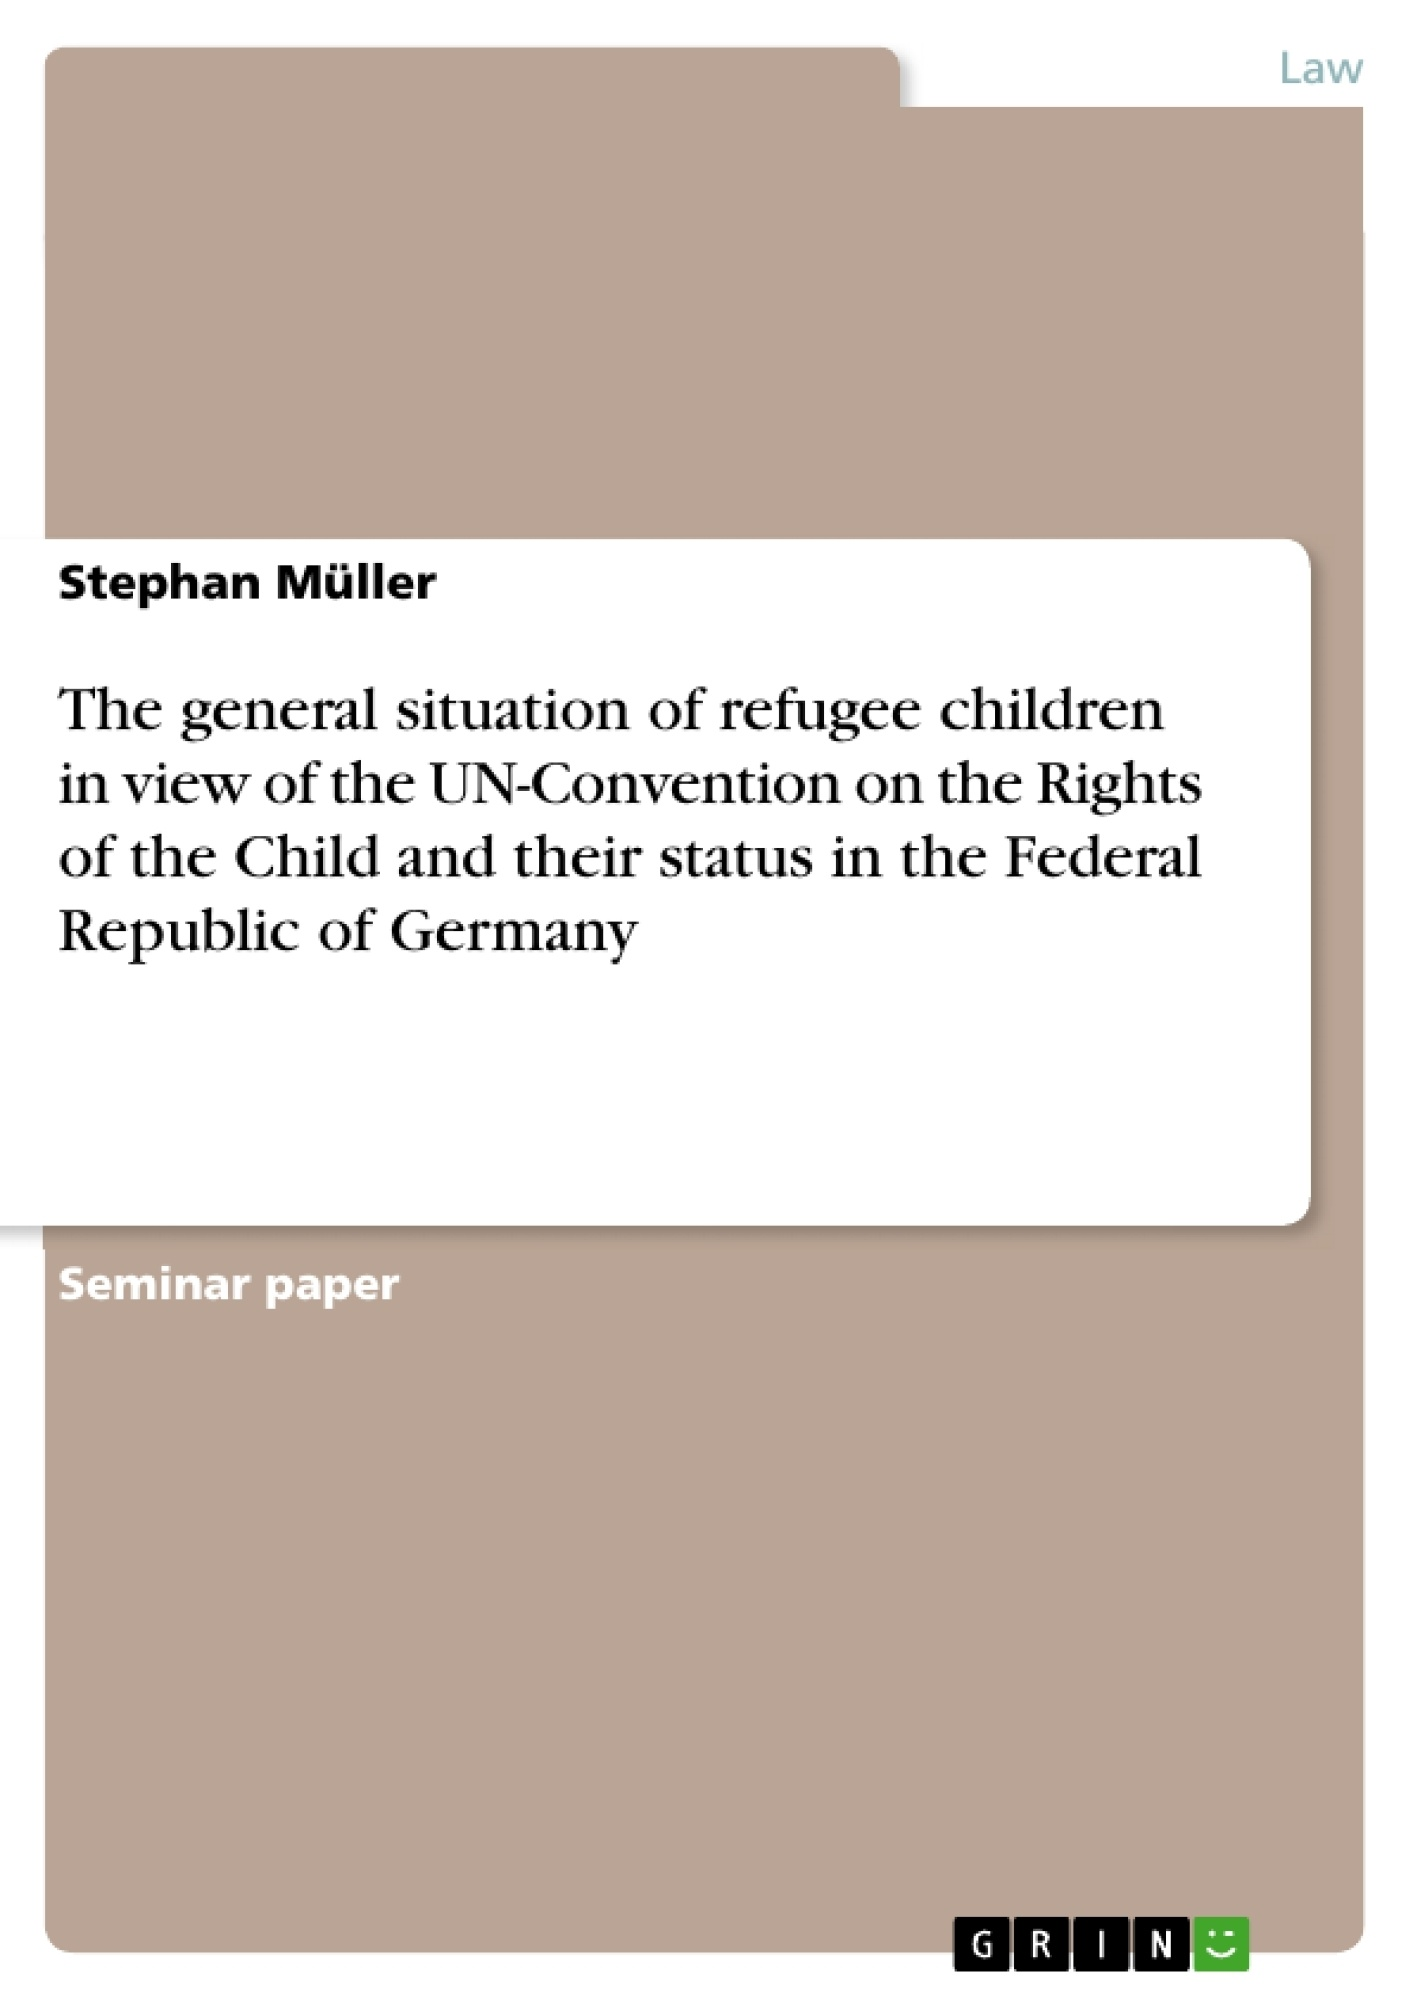 Title: The general situation of refugee children in view of the UN-Convention on the Rights of the Child and their status in the Federal Republic of Germany